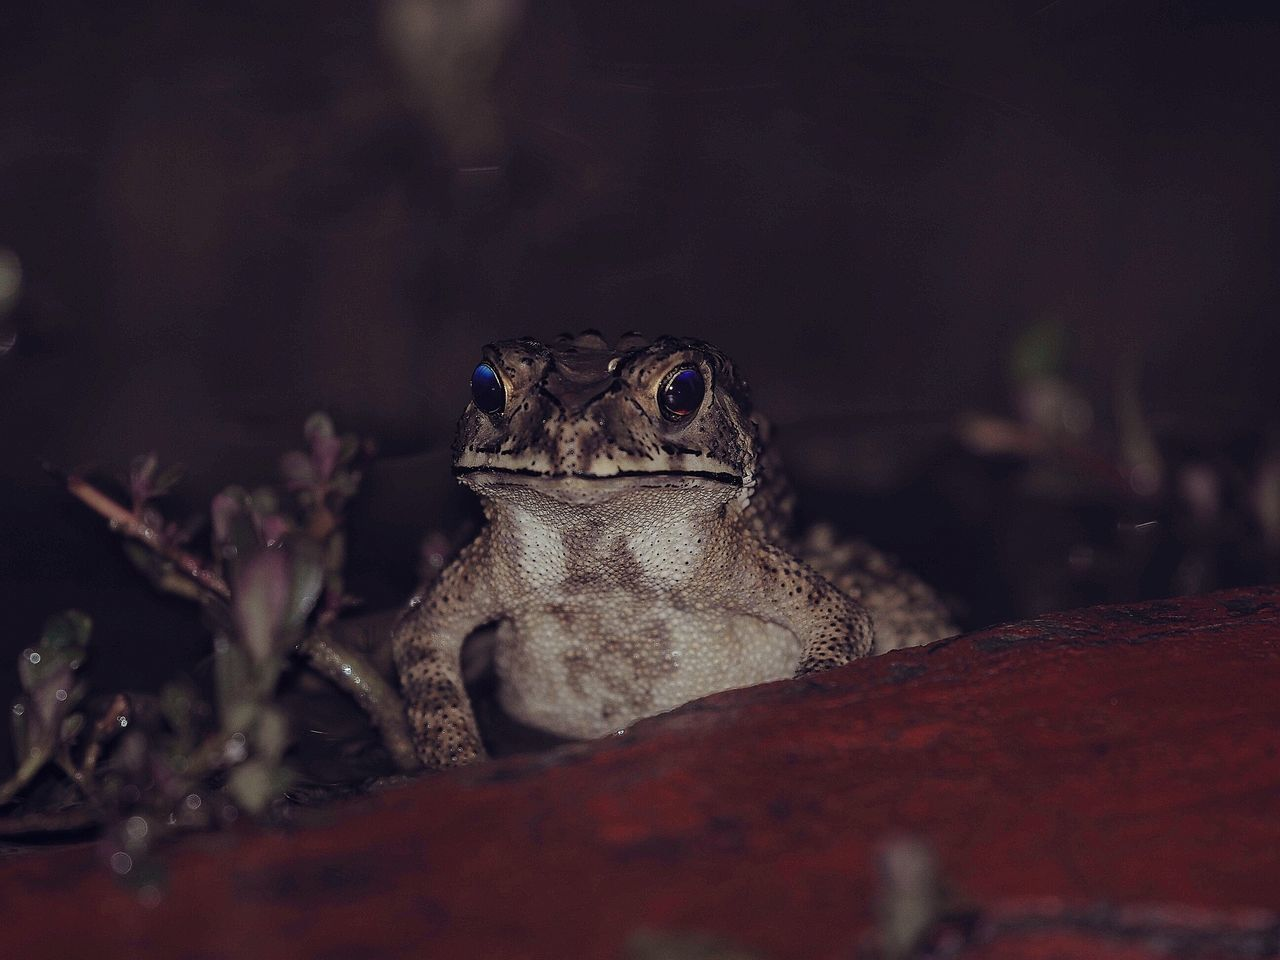 After Rain Patiently Waiting Waiting For Prey One Animal Looking At Camera Close-up Outdoors Frog Reptile